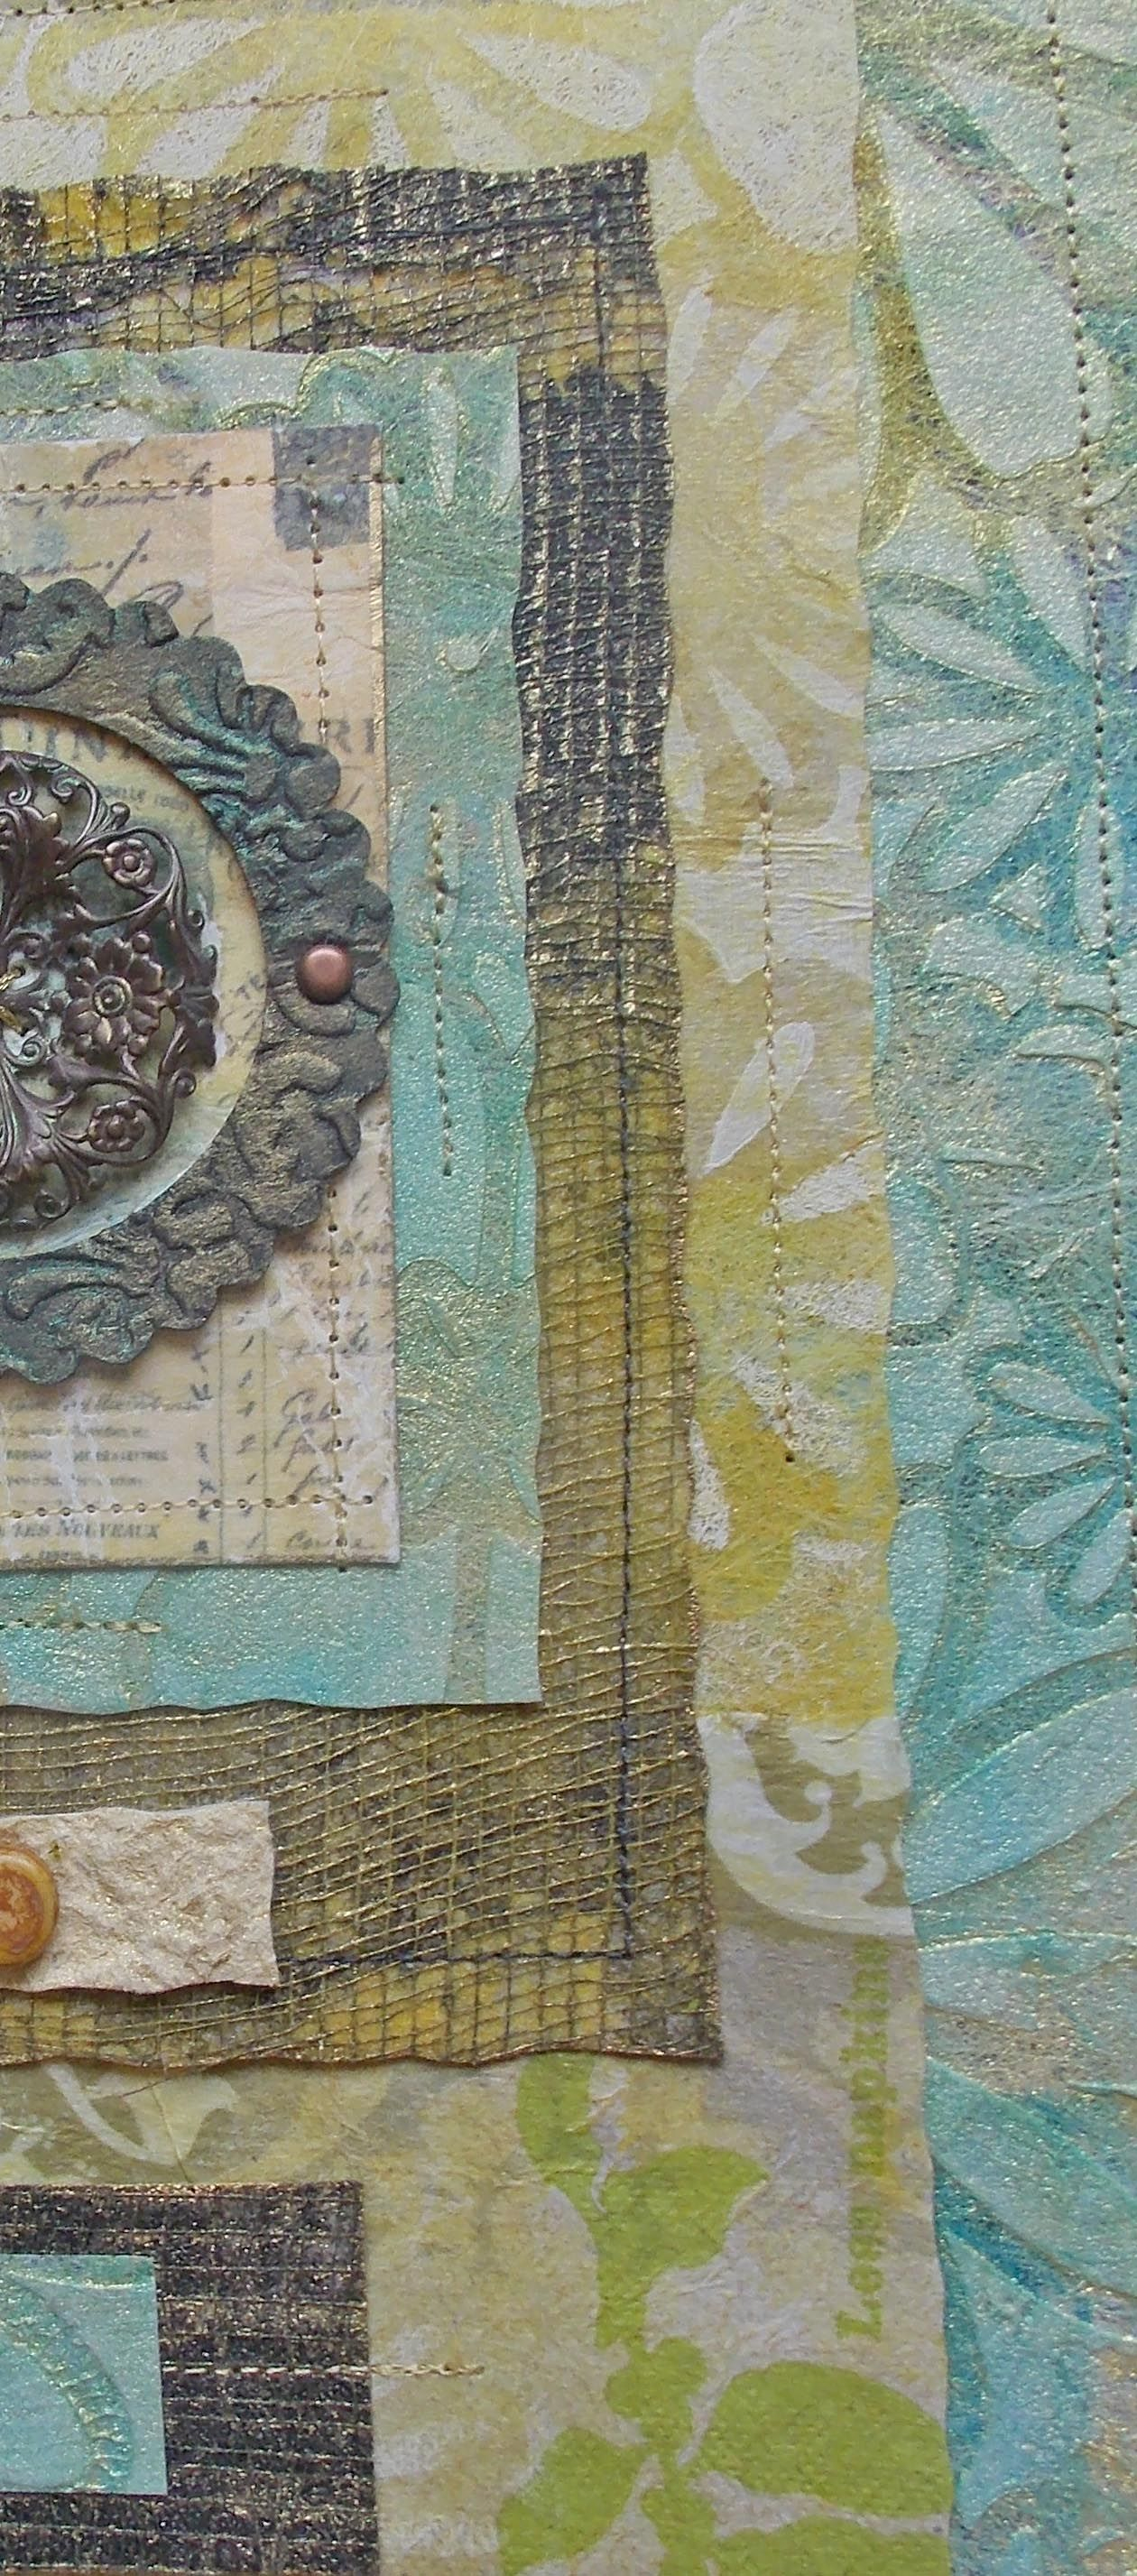 Fragment Of Fiber Assemblage Fabric Art Collage